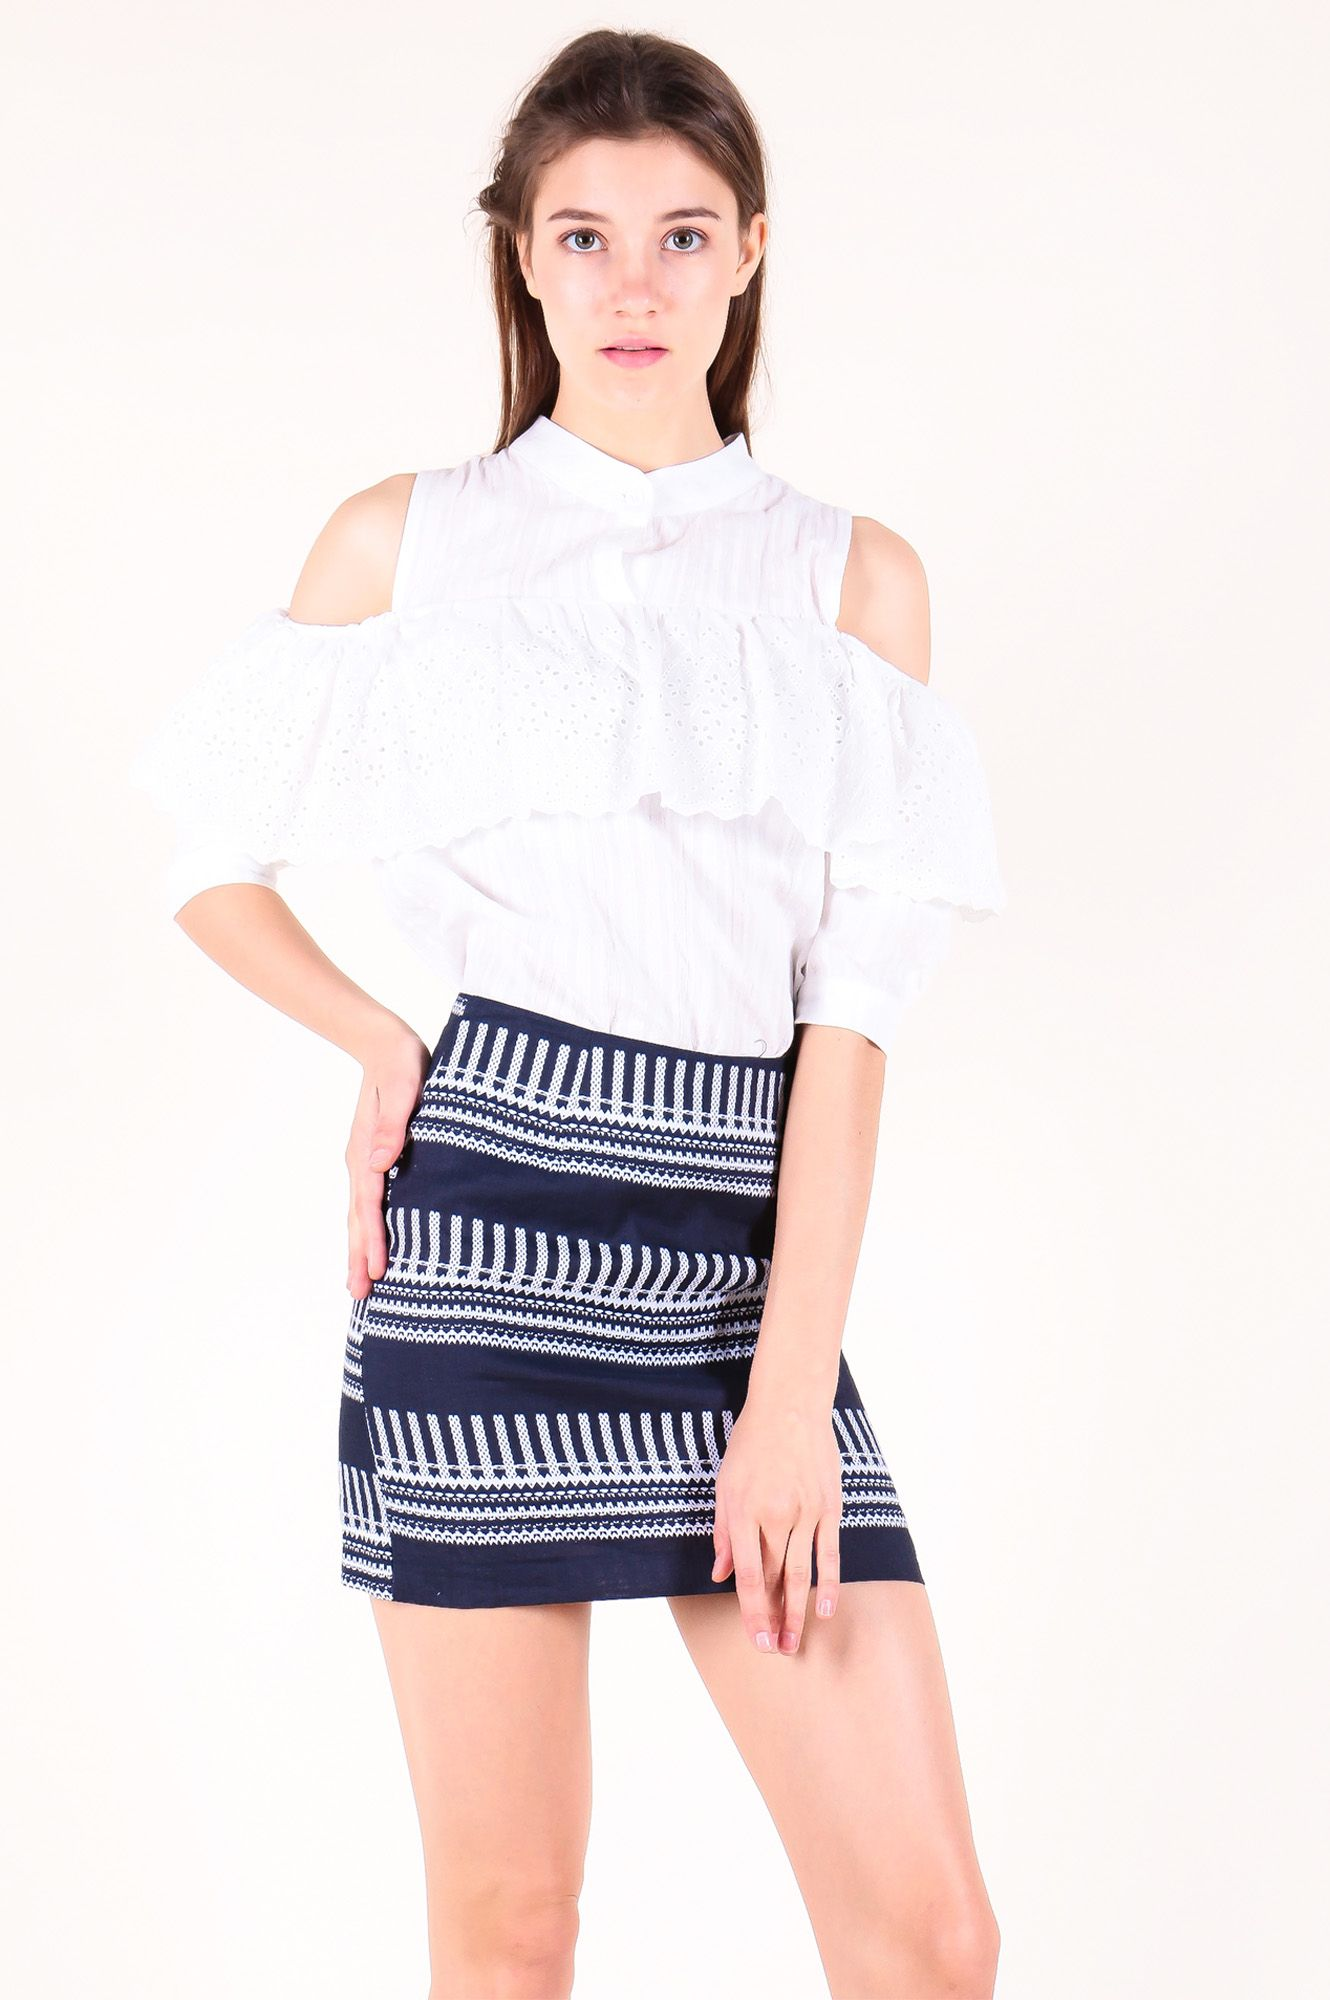 Cut-Out Sleeve Eyelet Panel Top (White) SGD$ 29.00